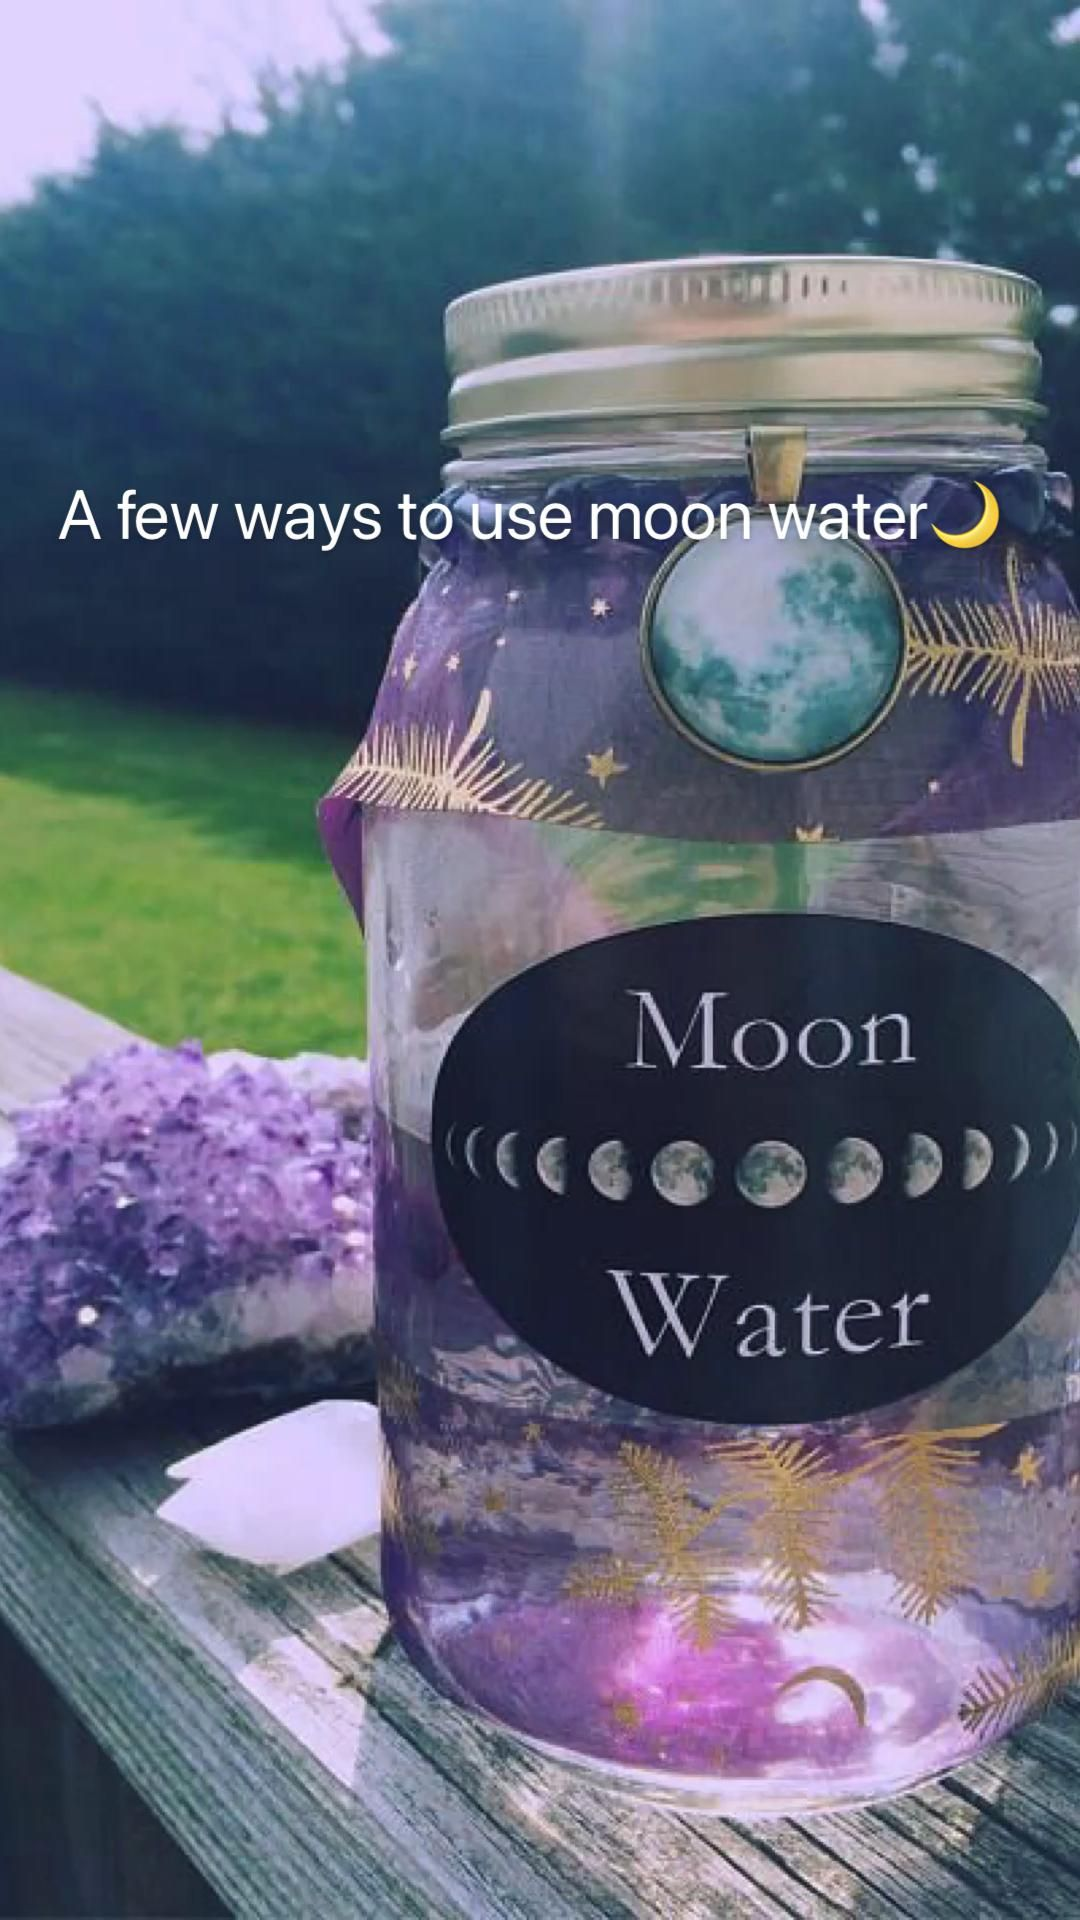 A few ways to use moon water🌙